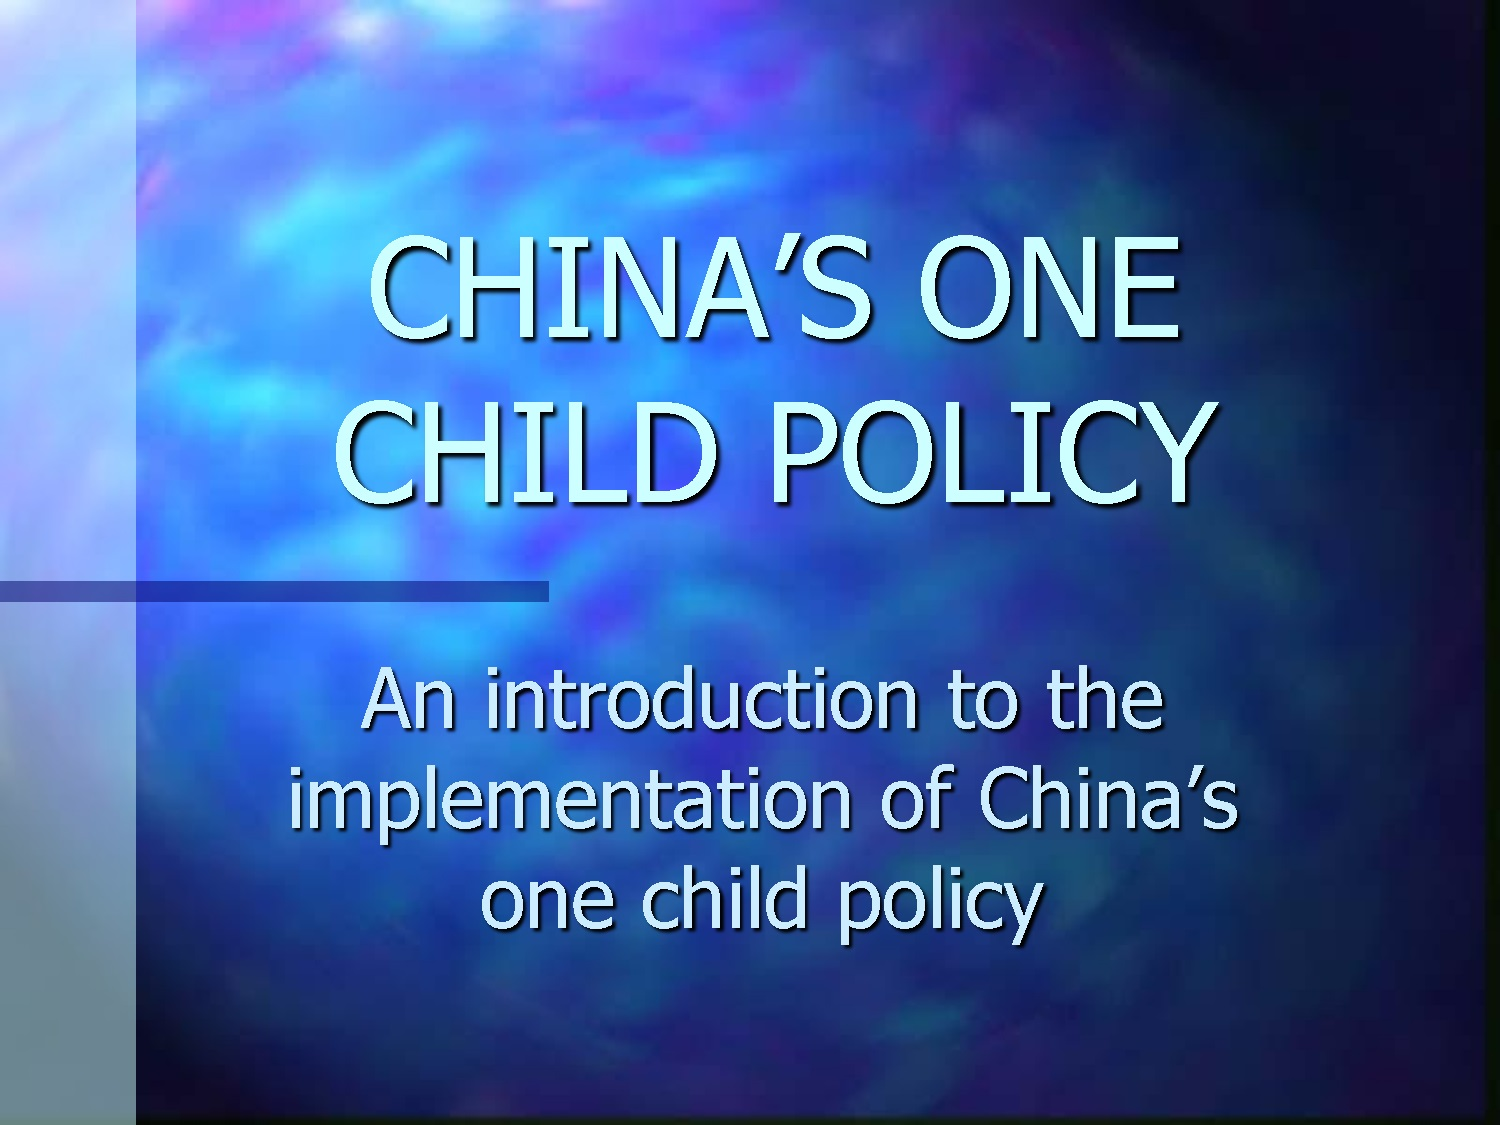 How the one child policy is